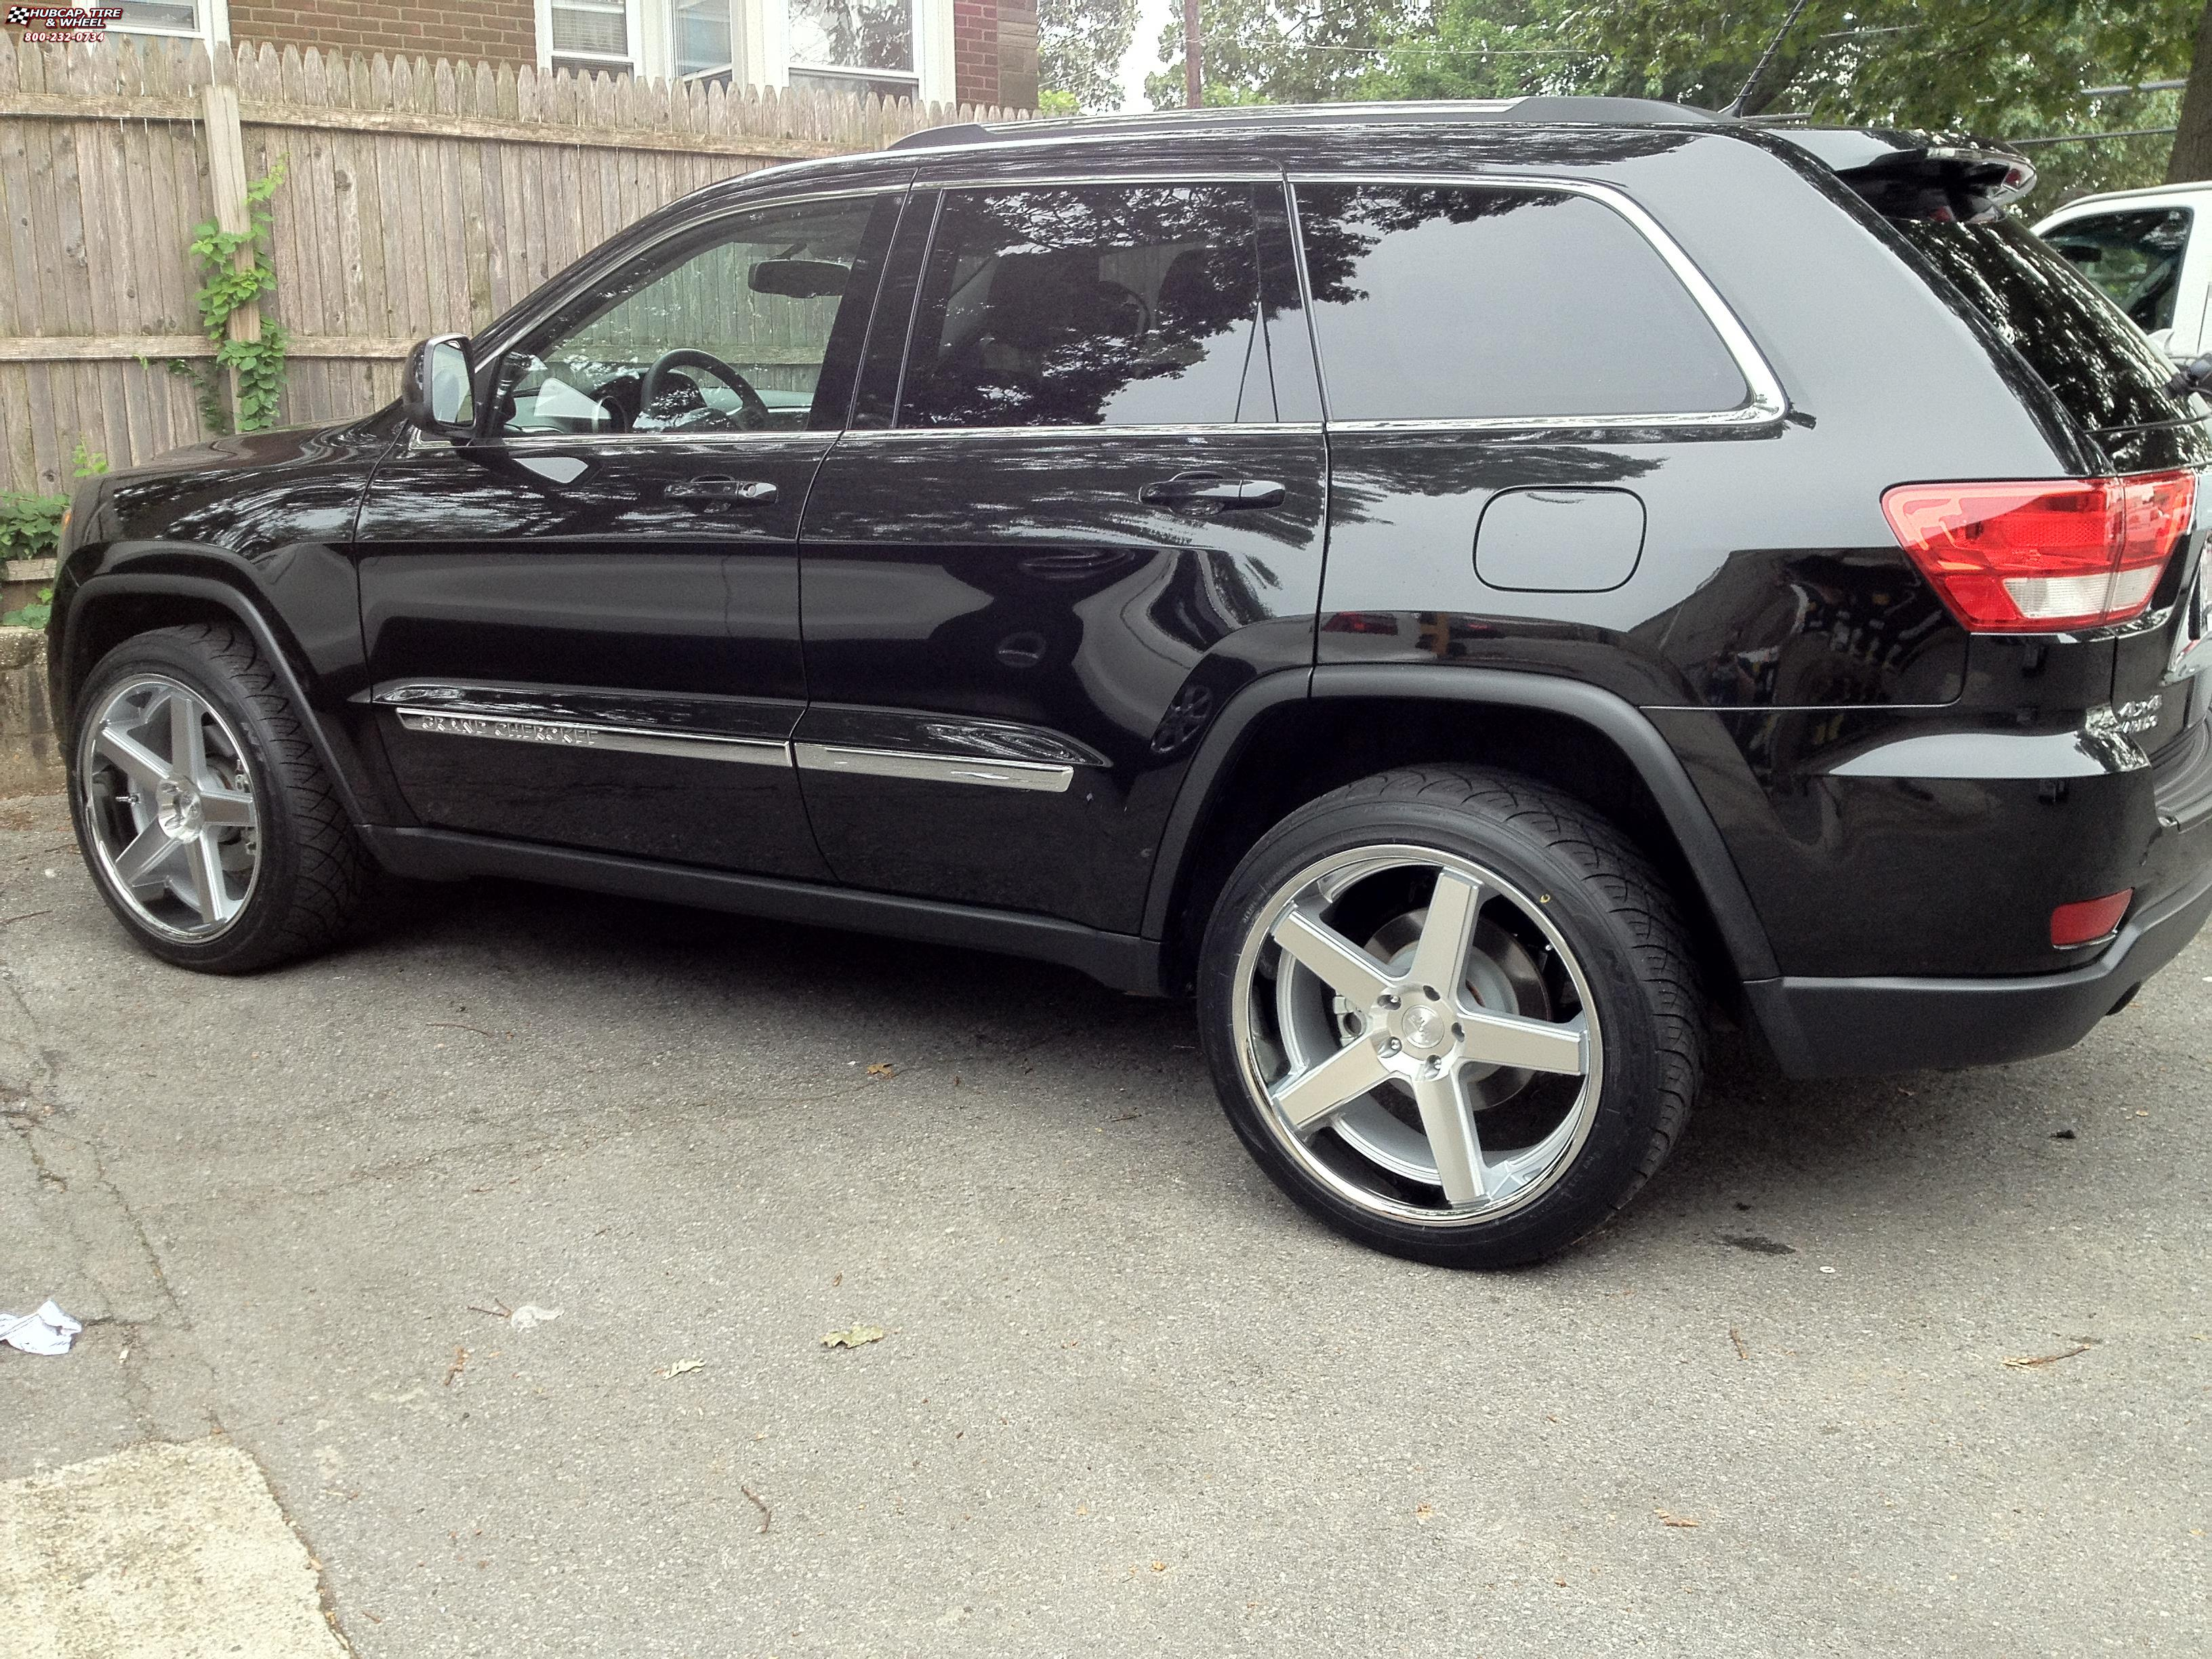 Fuel Vapor likewise Srt Wheel further Maxresdefault moreover Maxresdefault besides D T What Wheels Do You Have Your Xj Img. on 2012 jeep grand cherokee rims